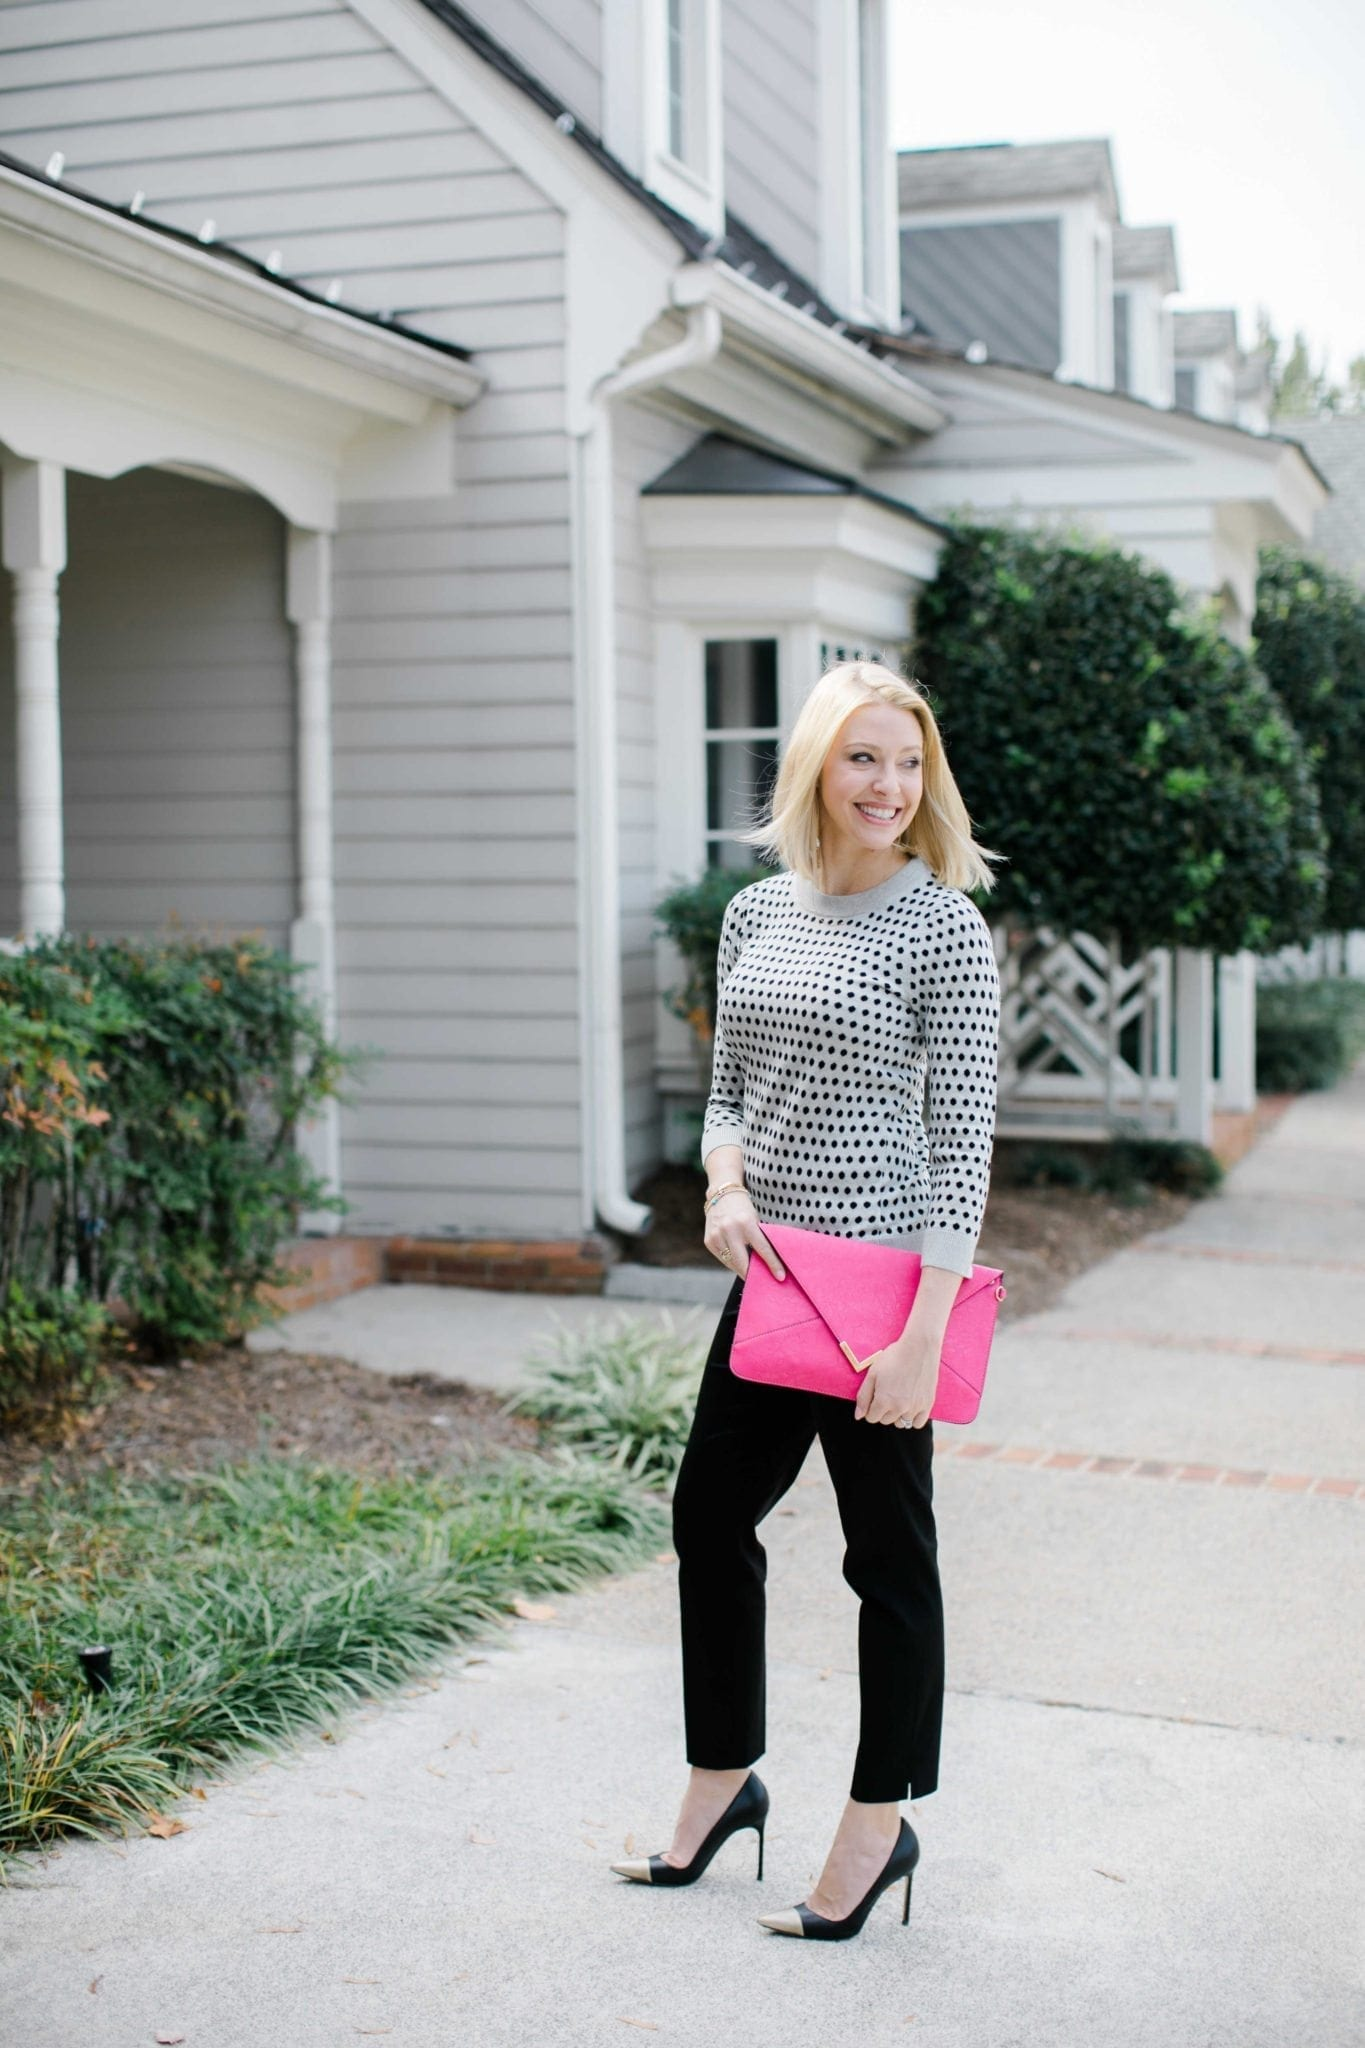 bluegraygal wearing polka dot sweater that is gray with black polka dots